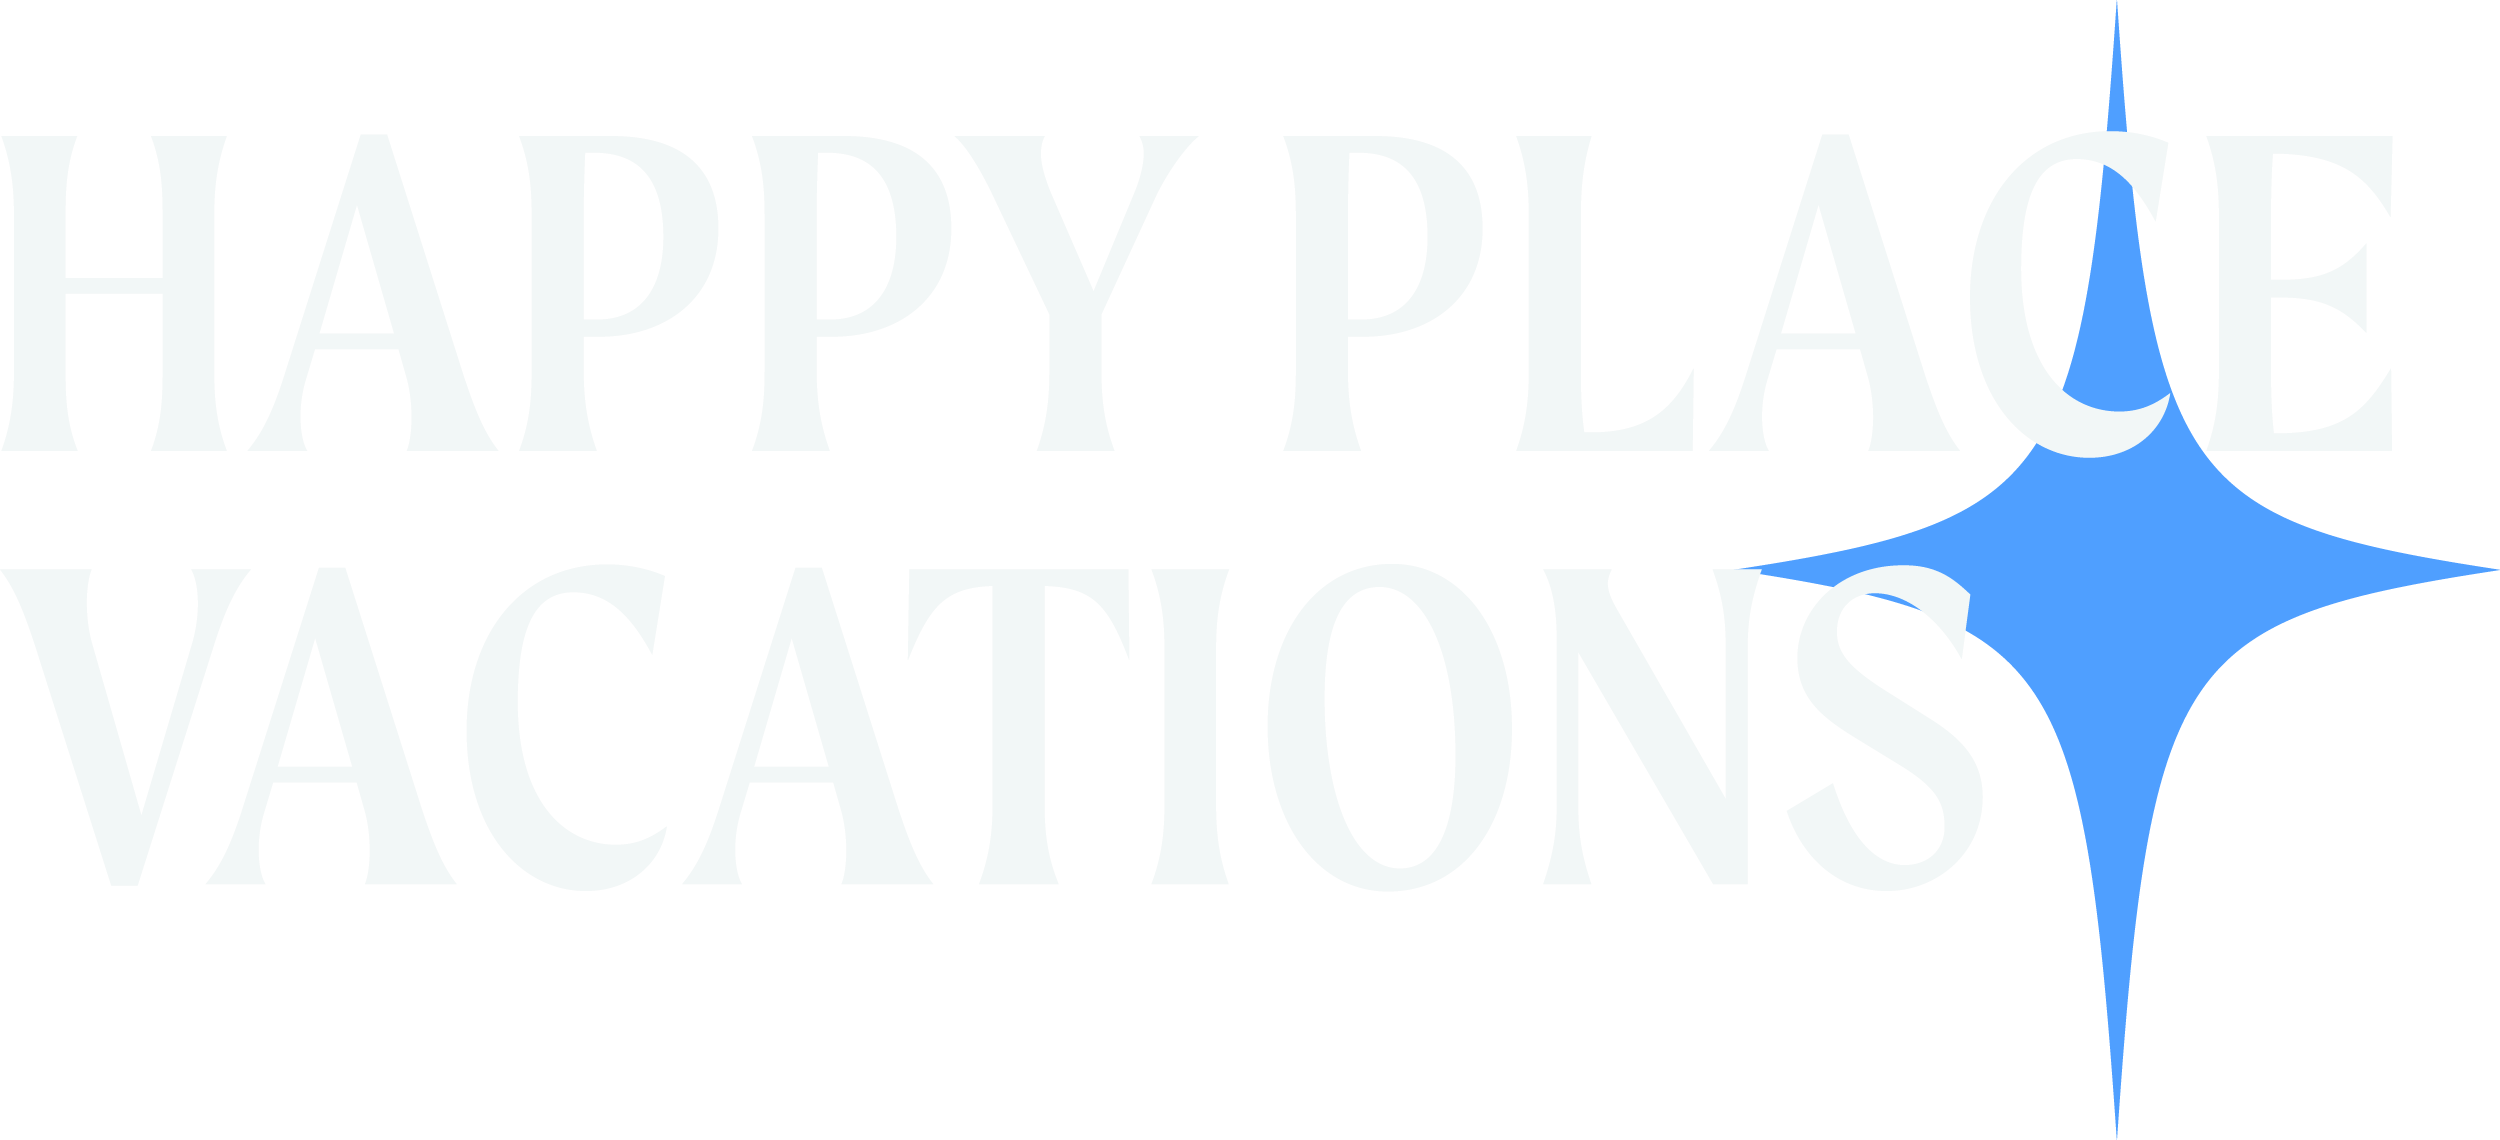 Happy Place Vacations logo design